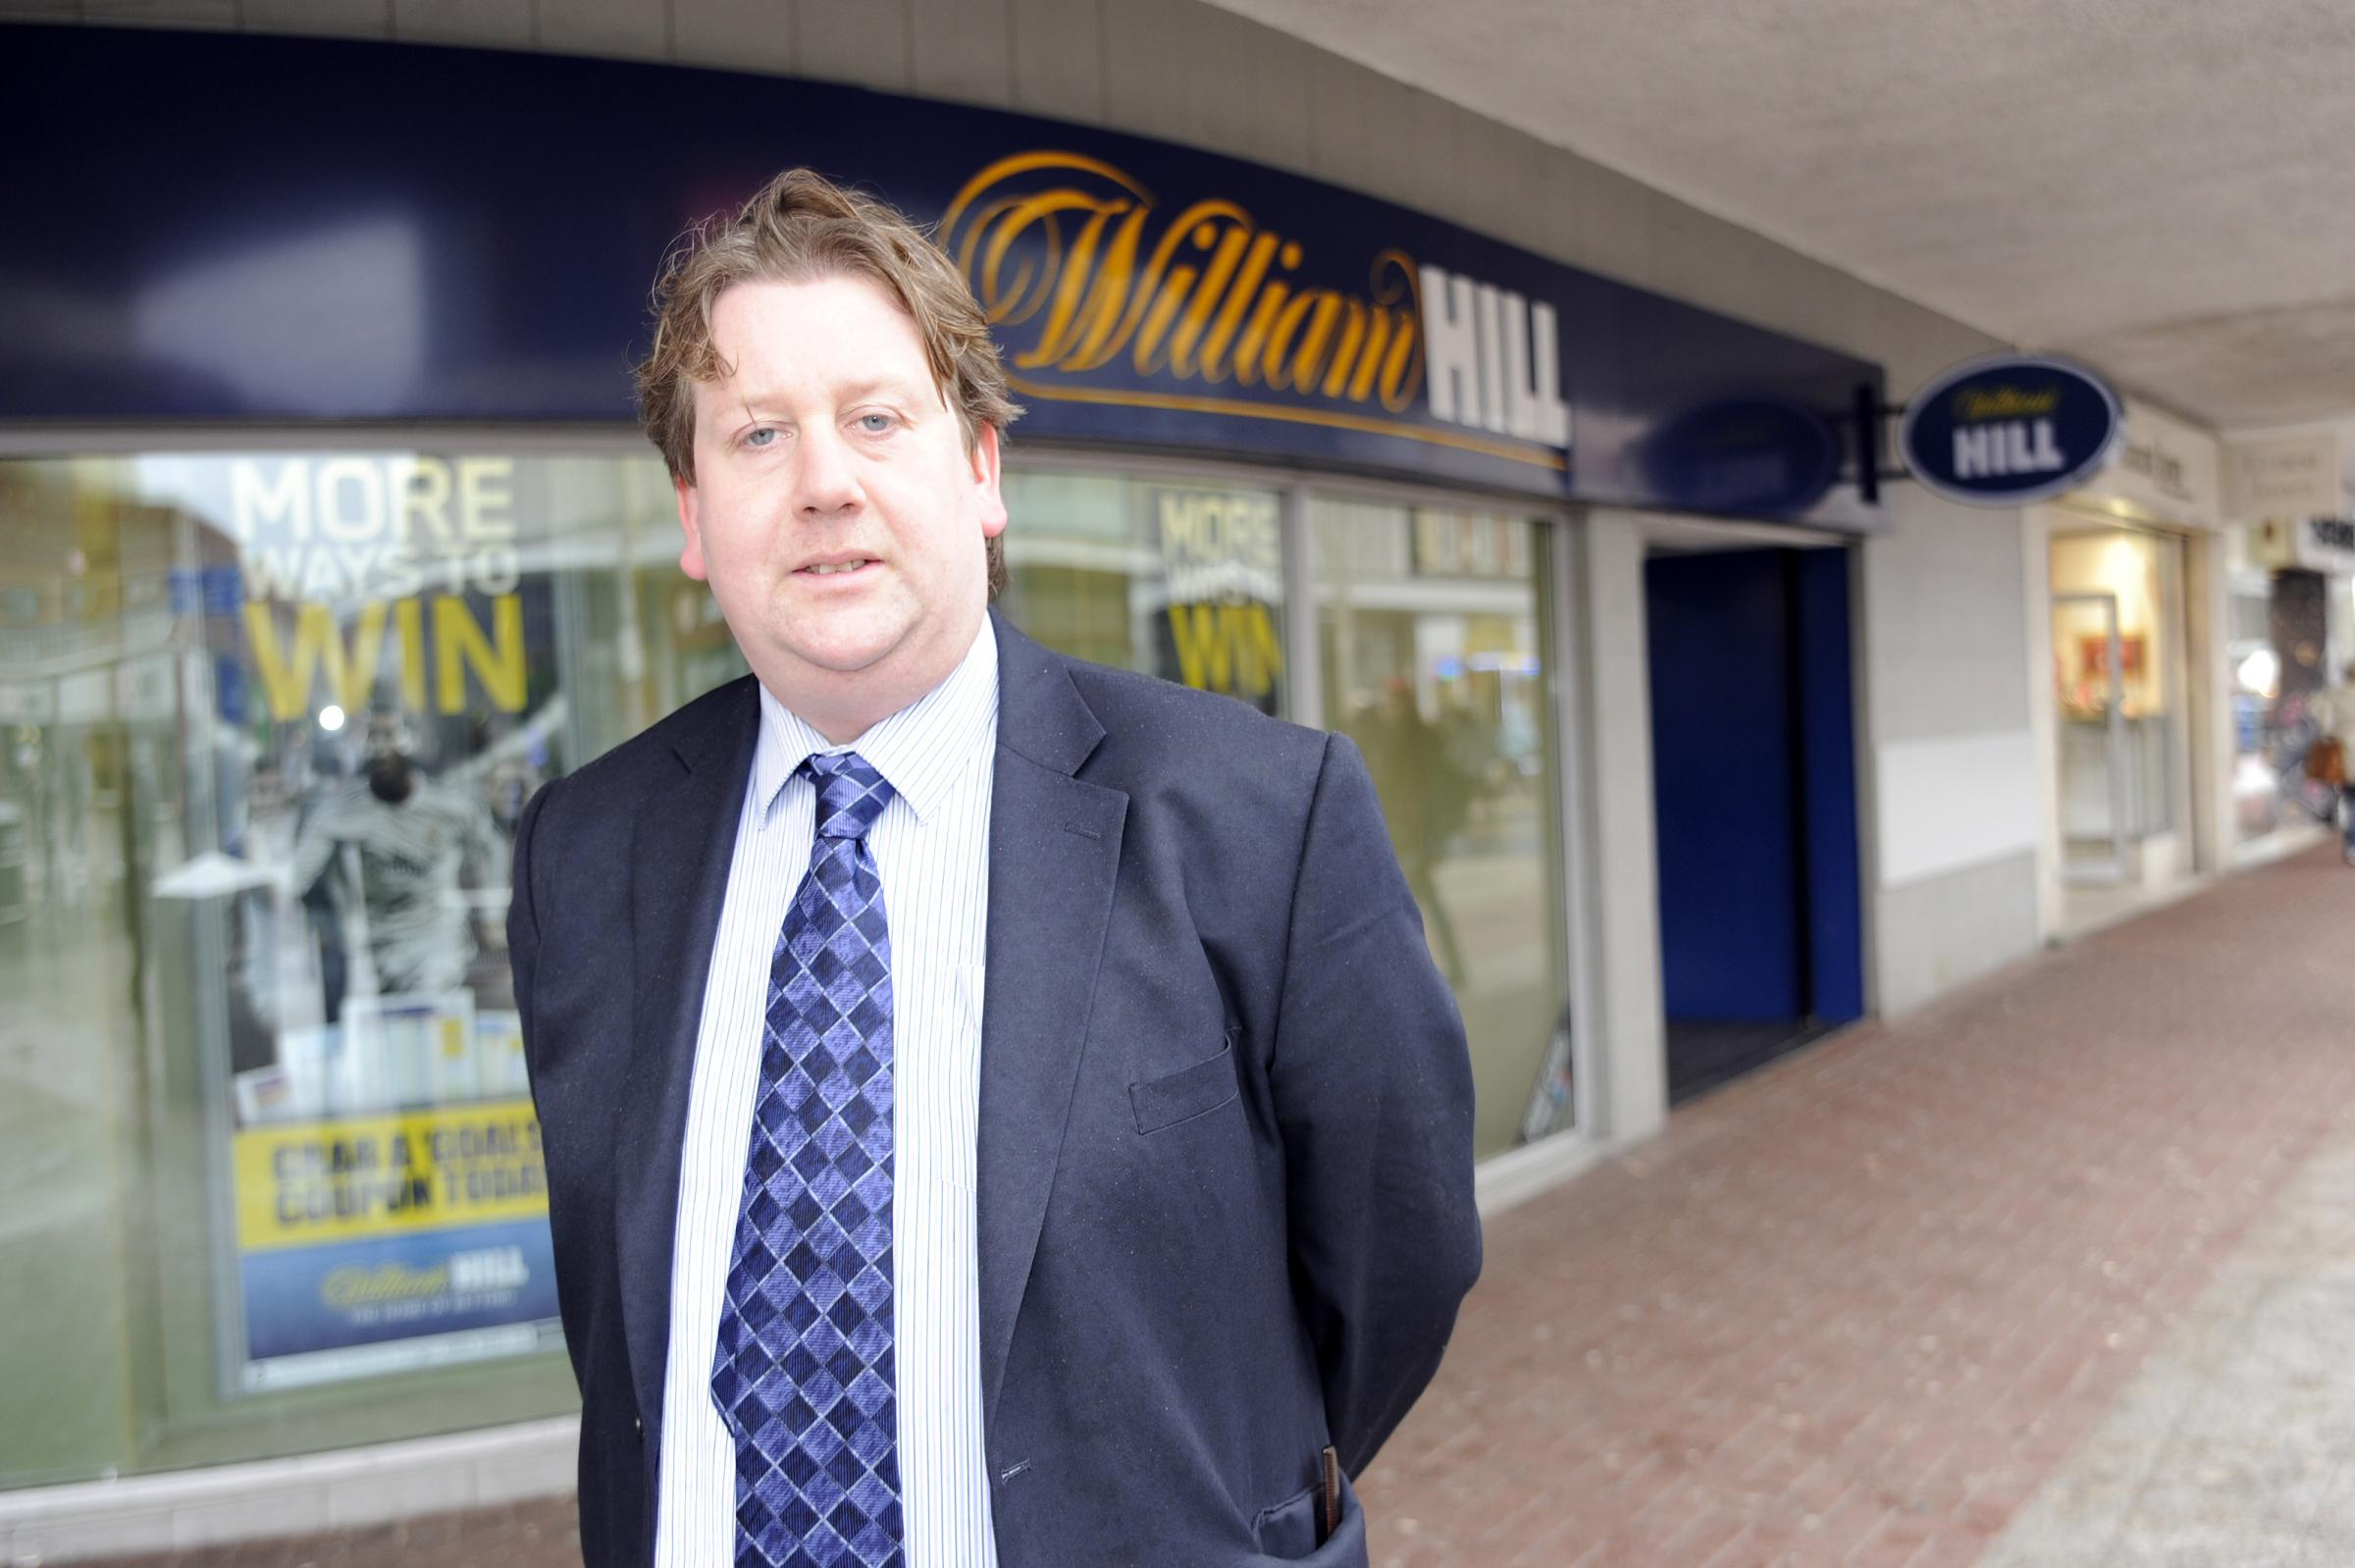 Southend Councillor Ian Gilbert outside betting shop. He has criticised these machines